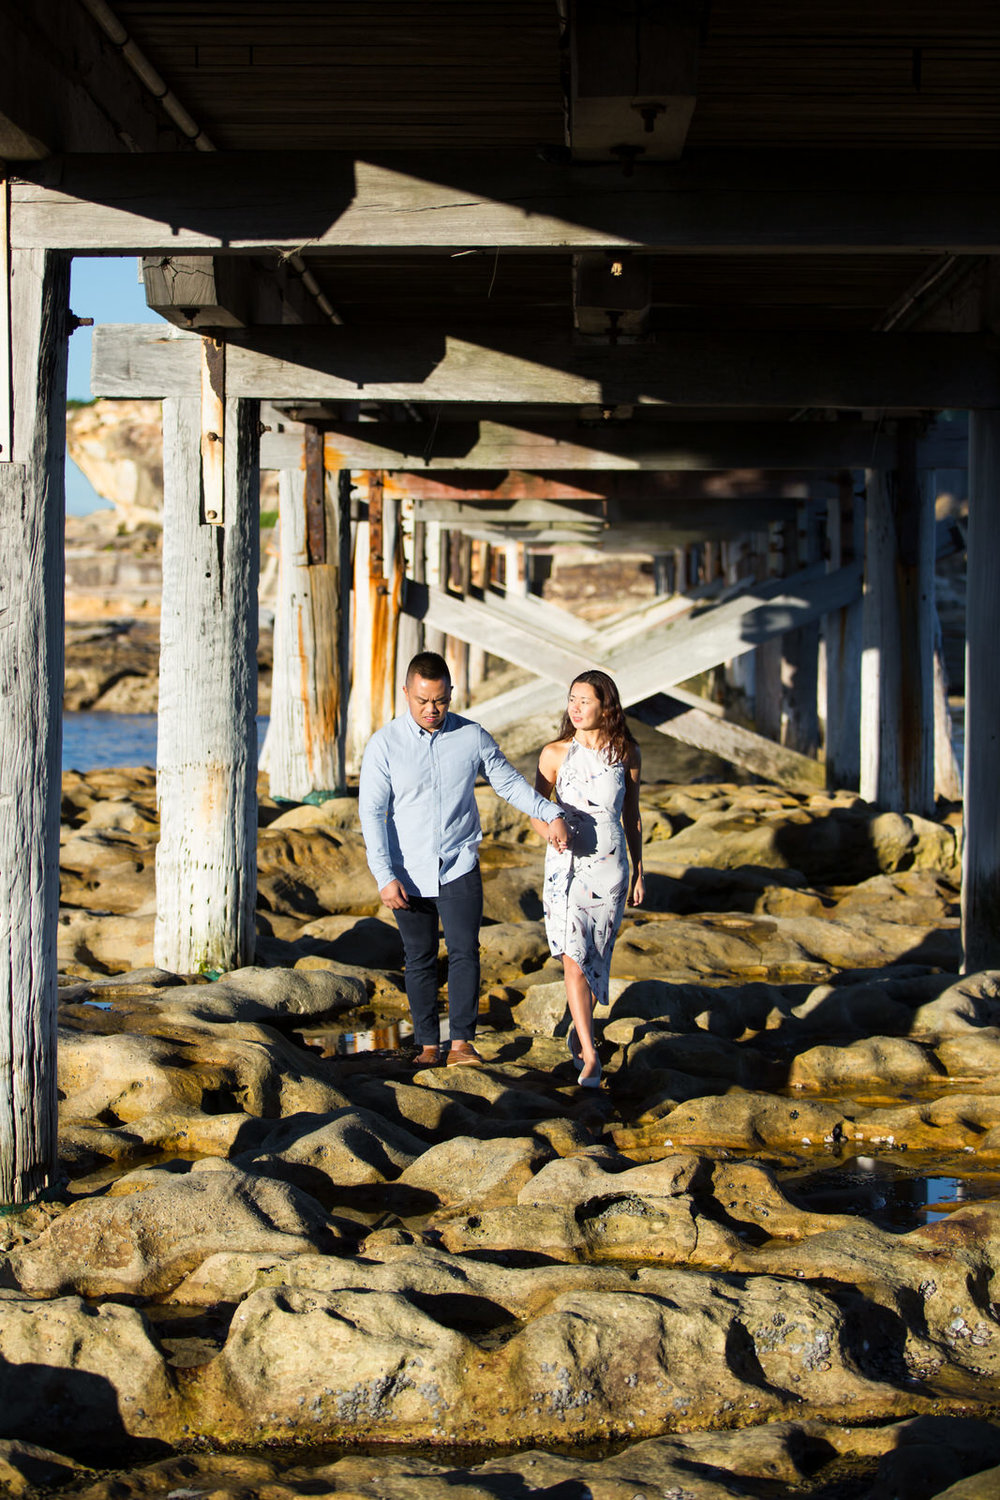 Sydney Engagement Pre-Wedding Photography Session - Jennifer Lam Photography - La Perouse (21).jpg